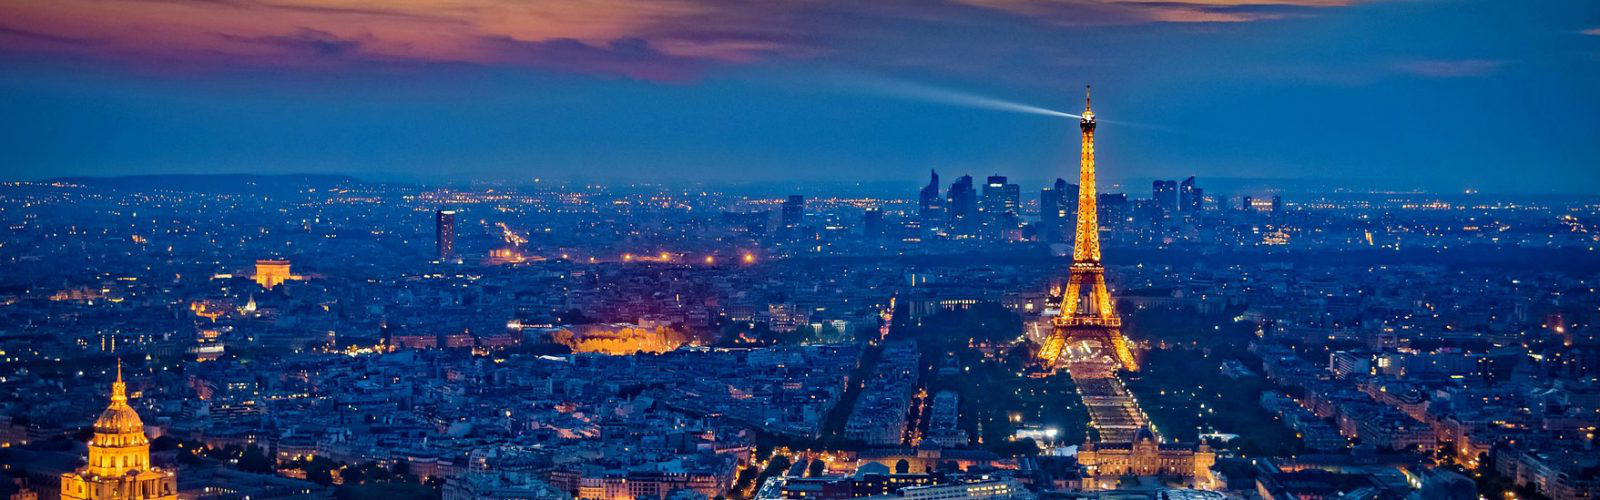 Aerial view 的 Paris, France, at night.